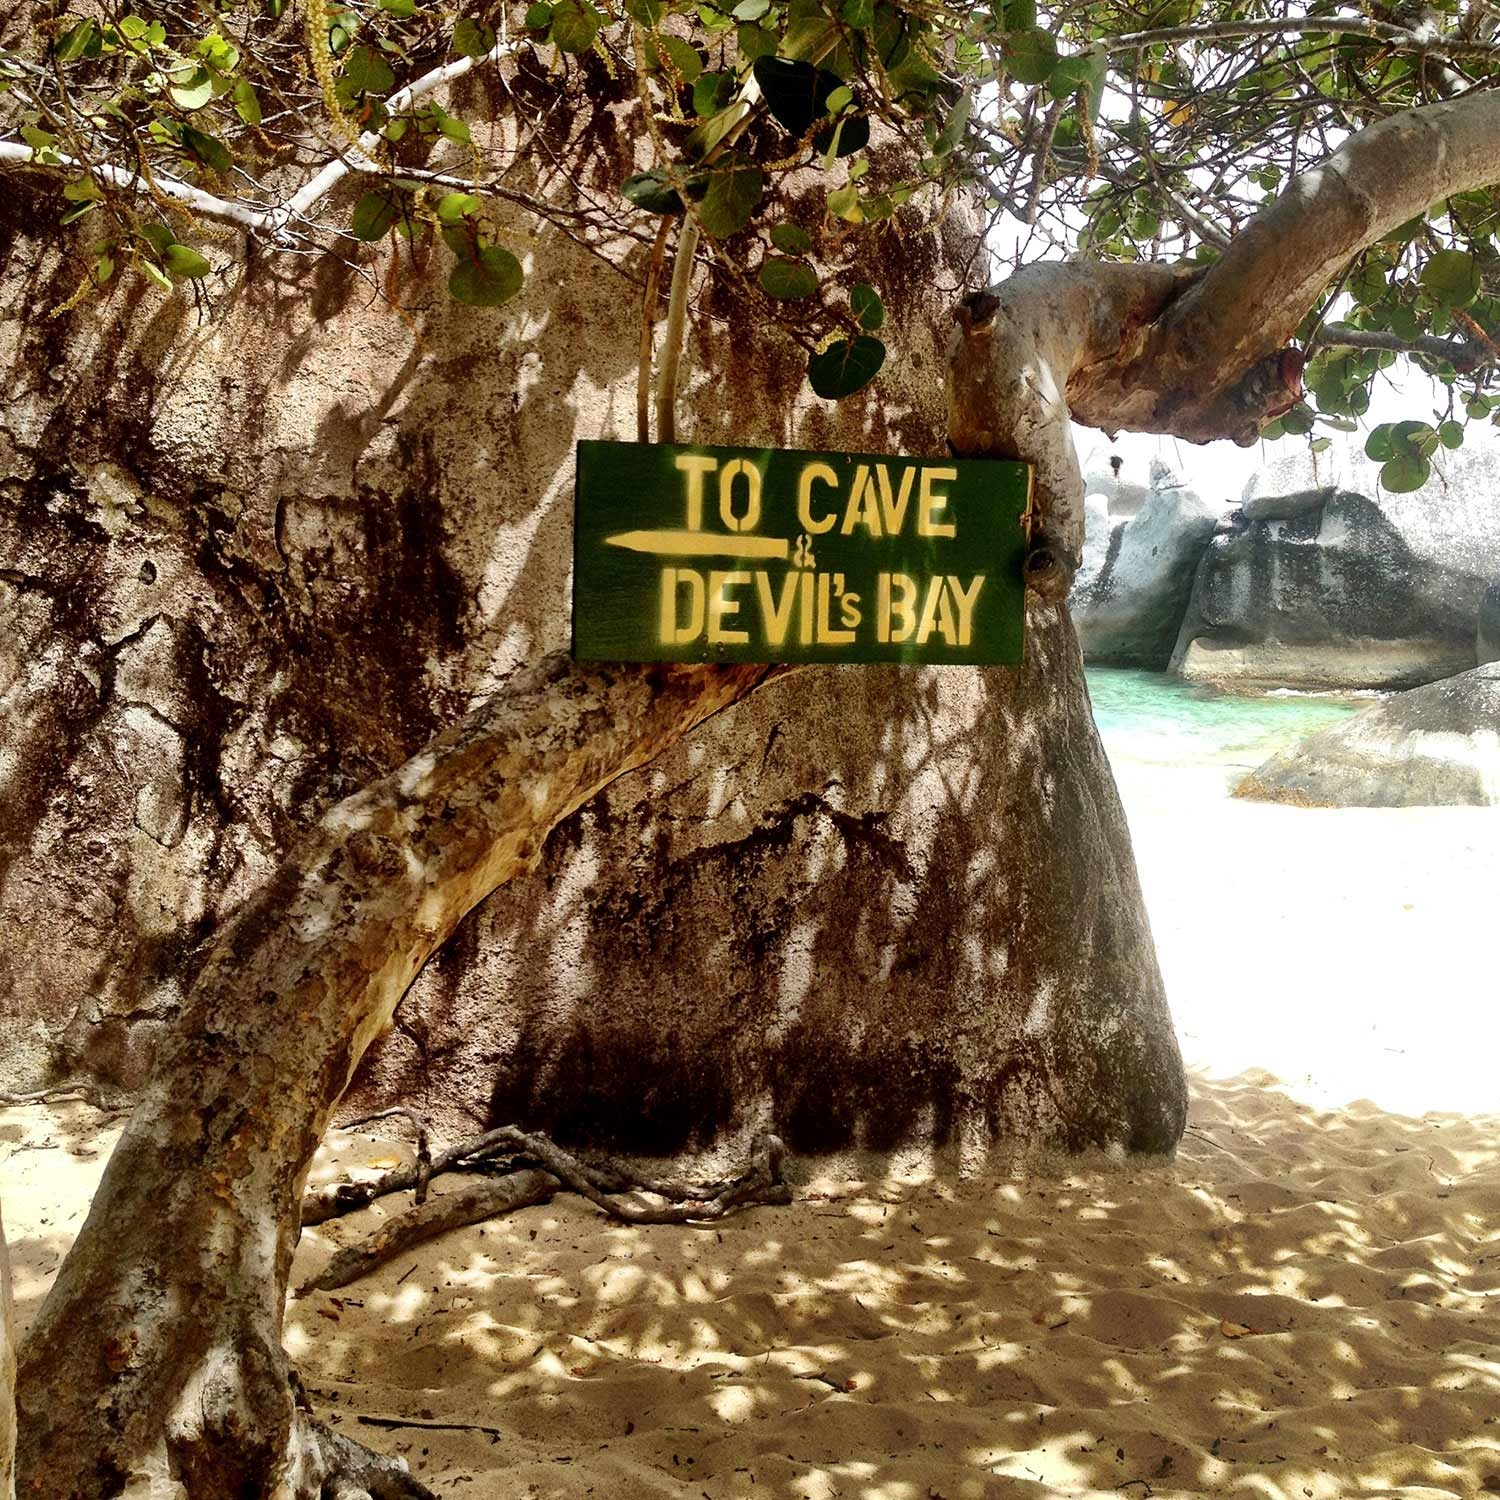 Trees and rocks along the beach with a sign reading 'To Cave and Devils Bay' with an arrow pointing left